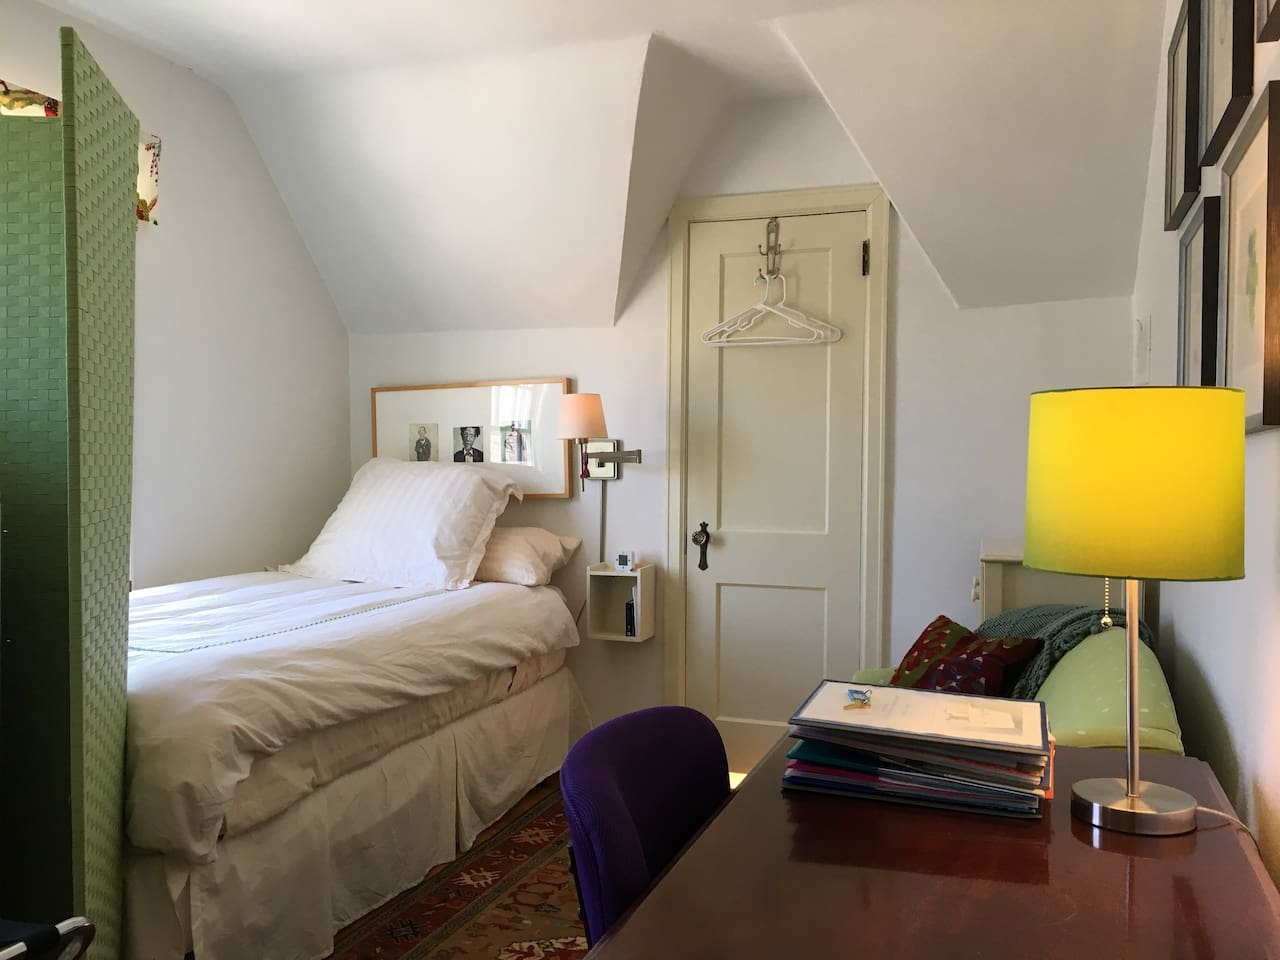 Clean, quiet, single bedroom with XL twin bed, loveseat, and desk.